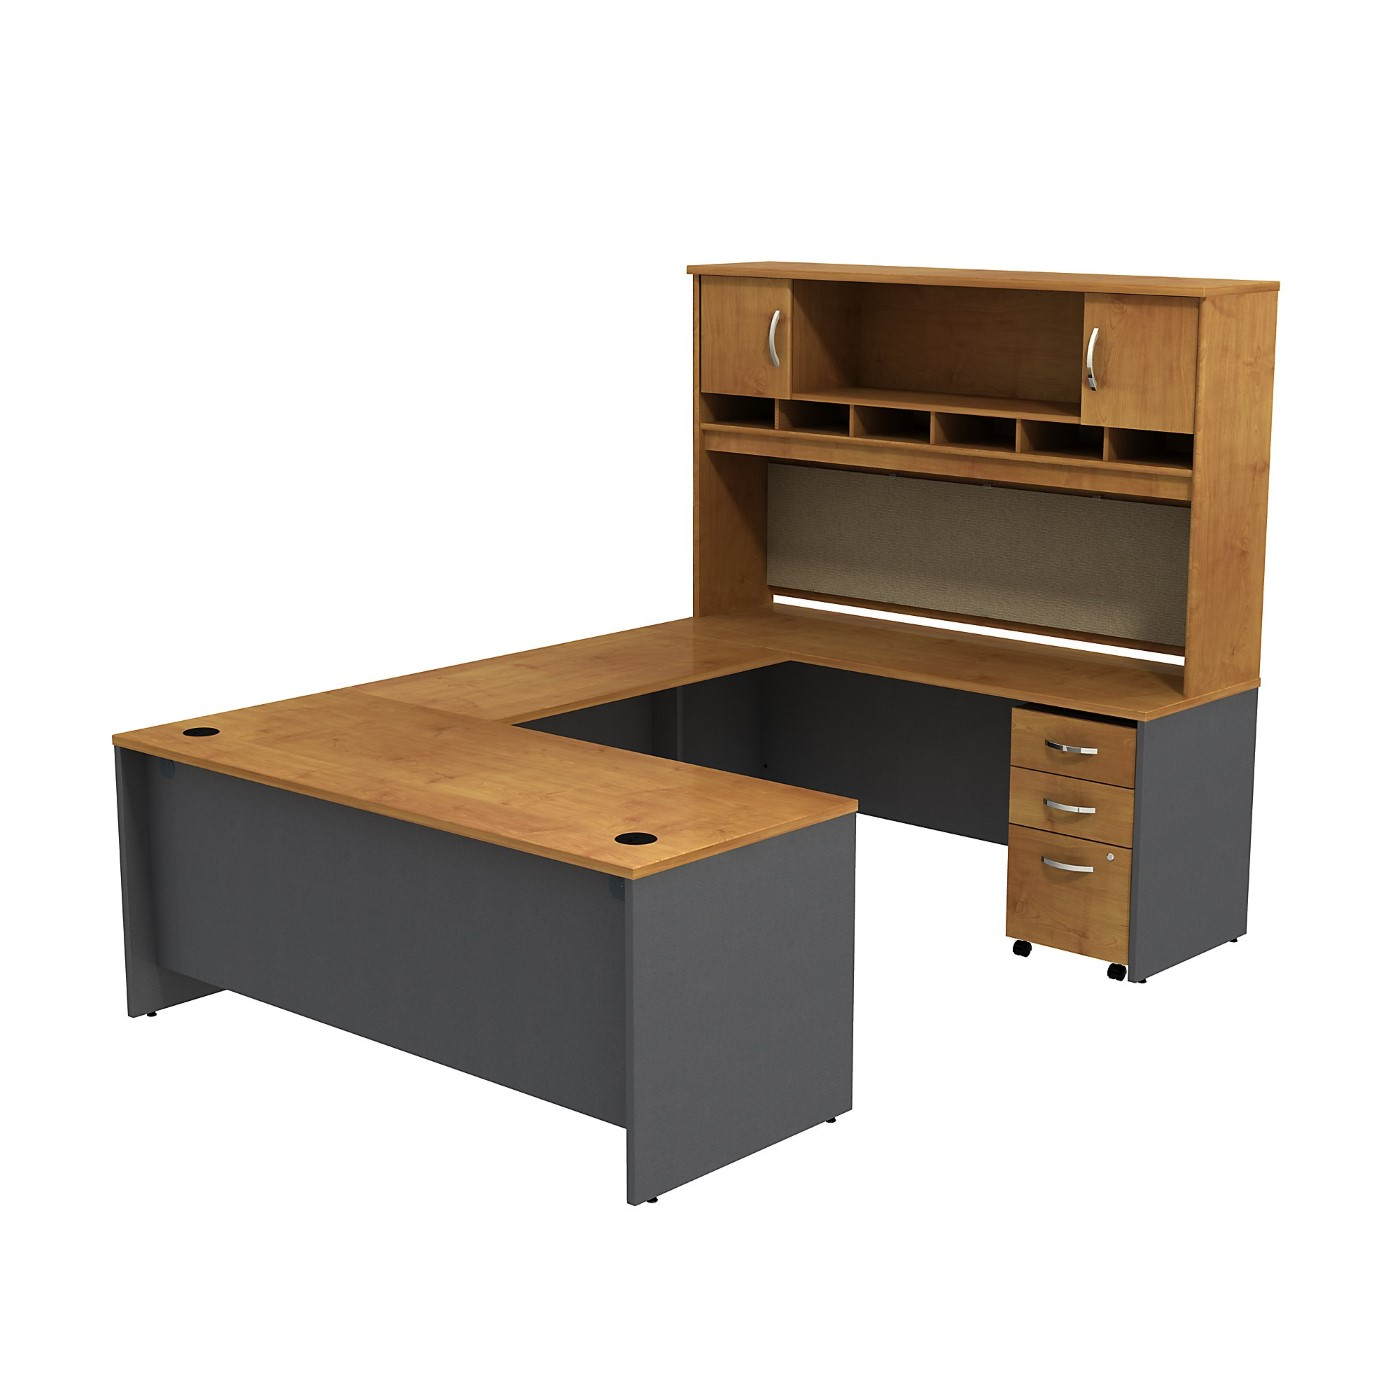 BUSH BUSINESS FURNITURE SERIES C U SHAPED DESK WITH HUTCH AND 3 DRAWER MOBILE PEDESTAL. FREE SHIPPING SALE DEDUCT 10% MORE ENTER '10percent' IN COUPON CODE BOX WHILE CHECKING OUT.